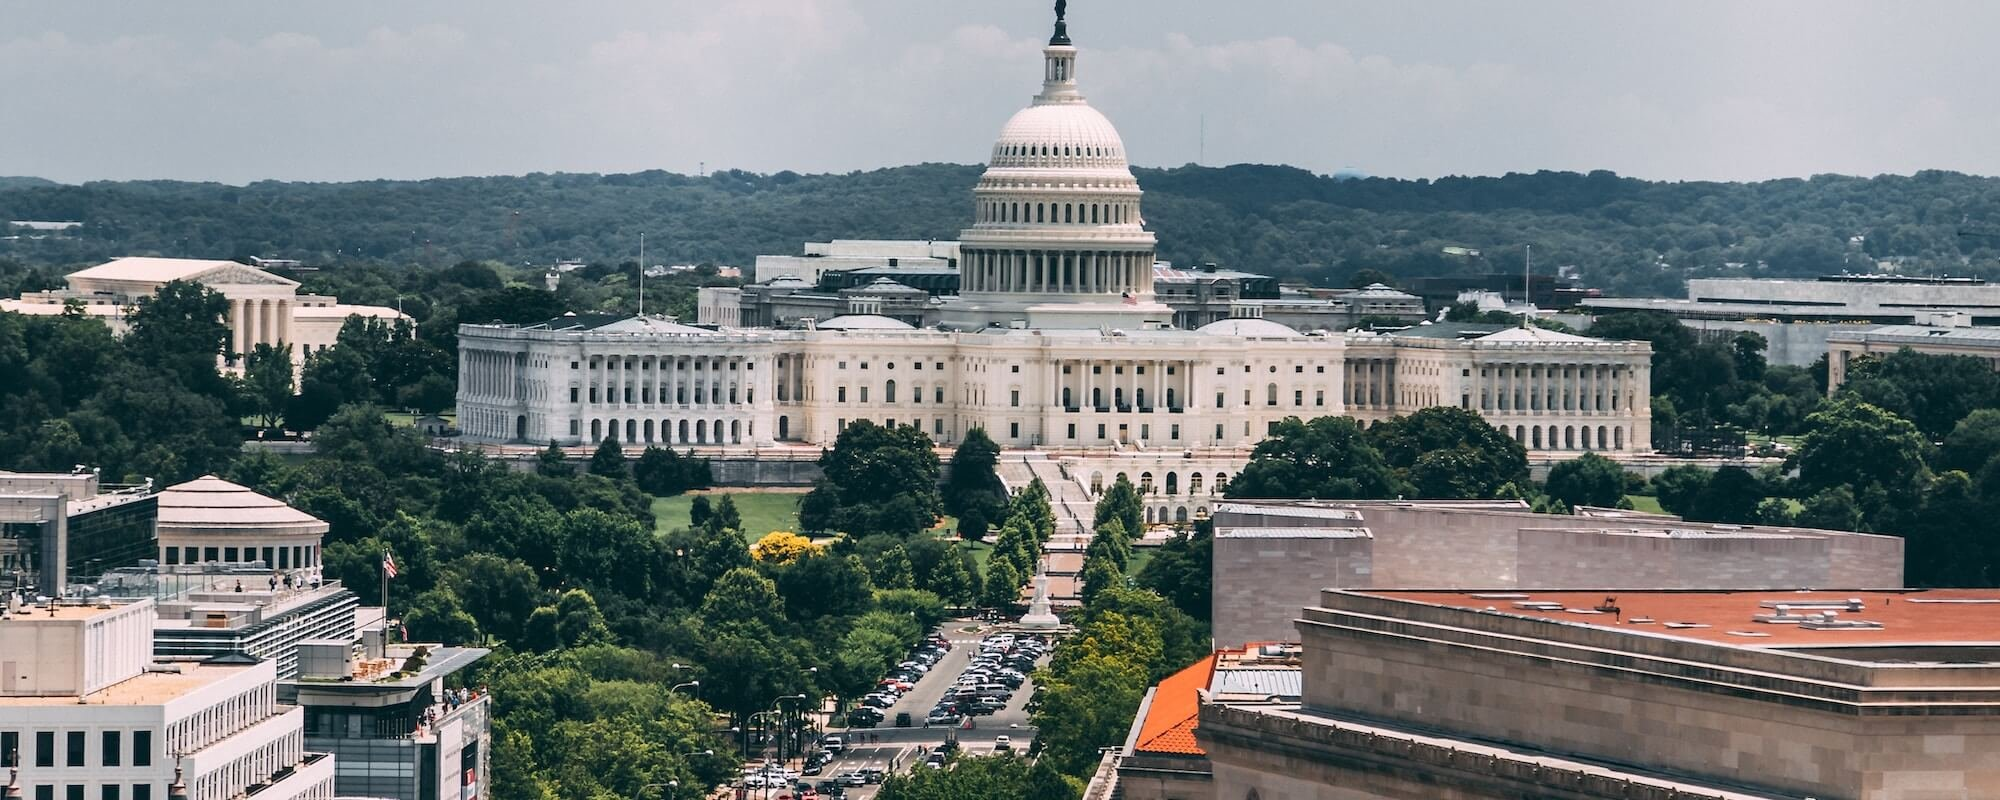 us government more rpa announcements